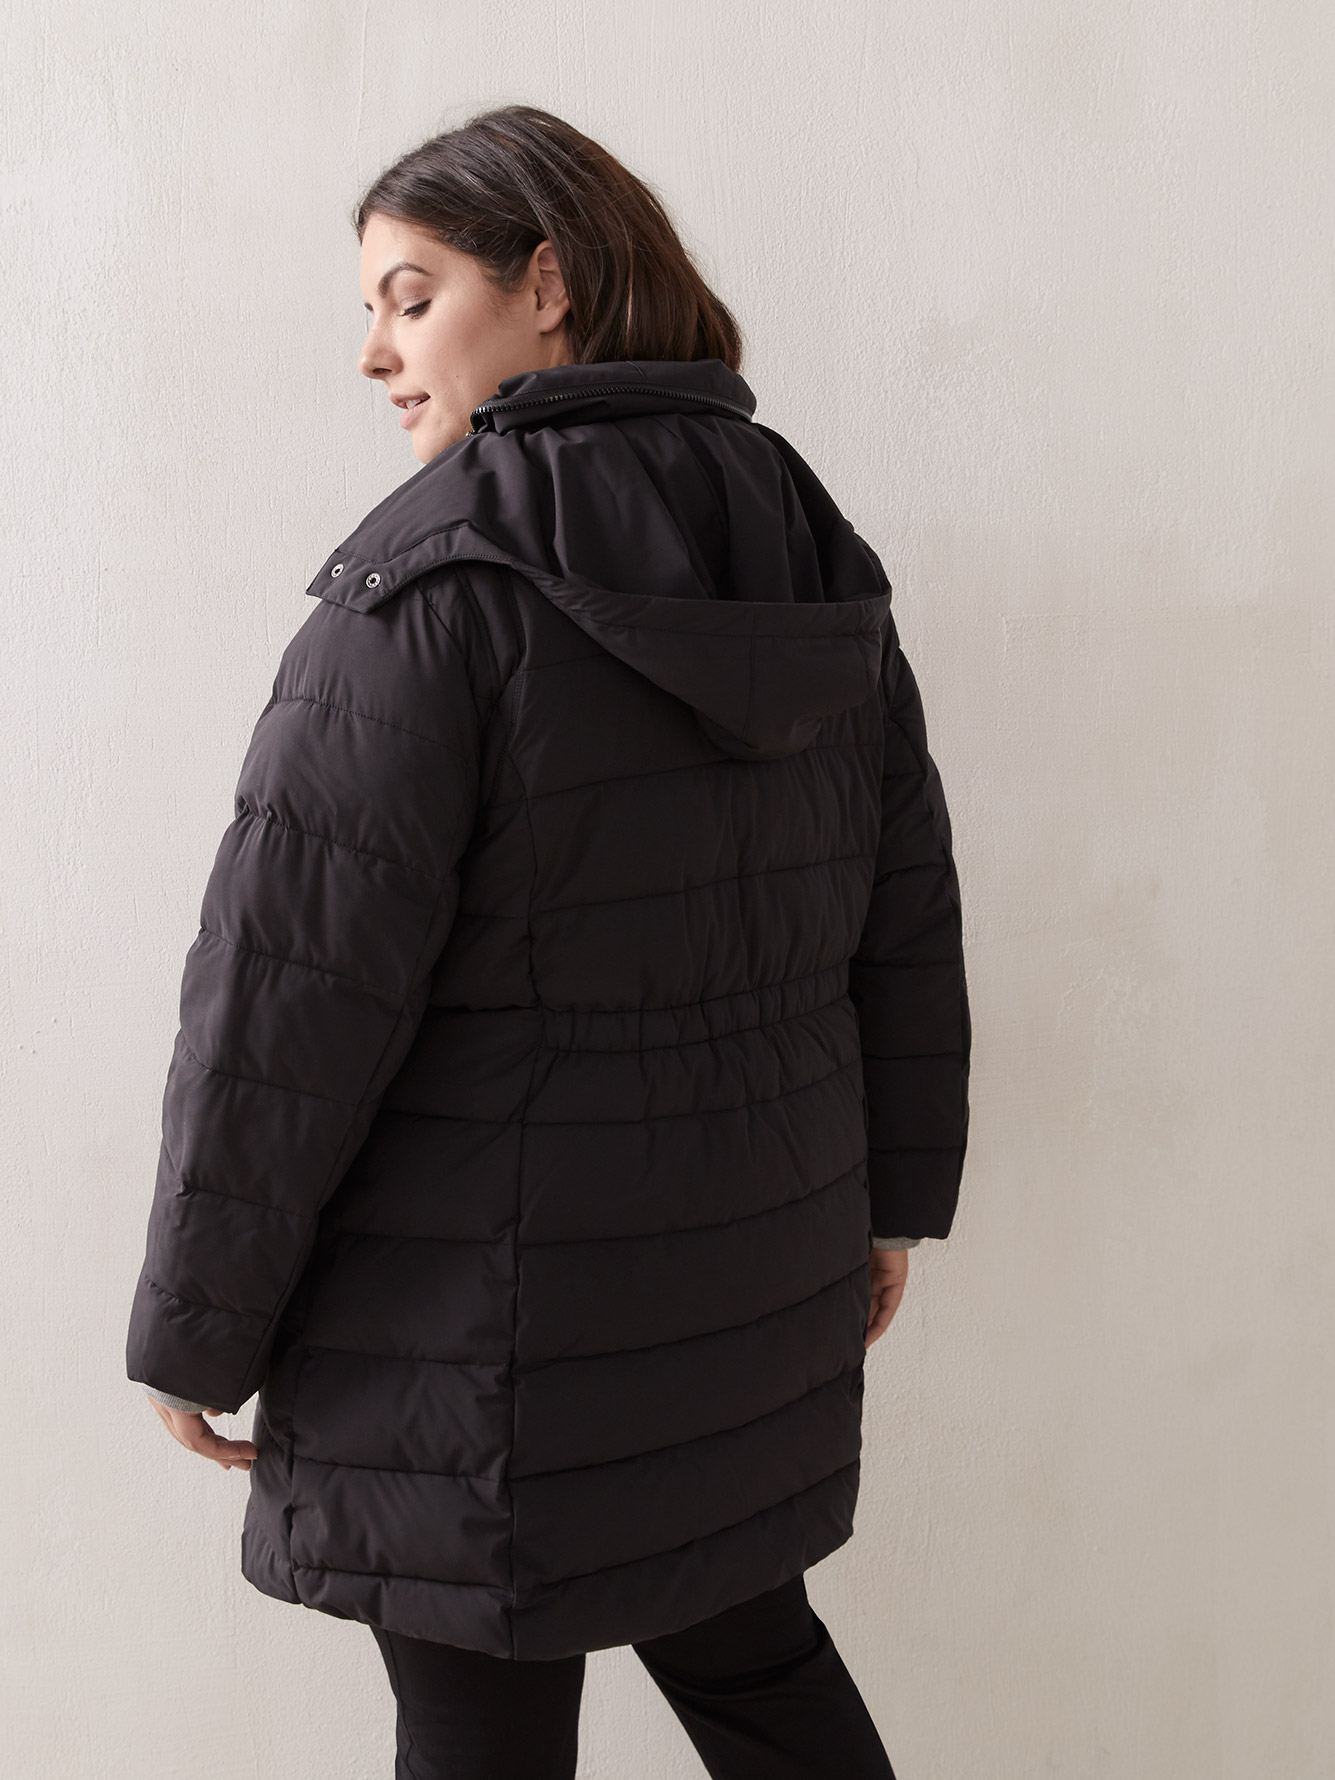 Knee-Length Puffer with Concealed Hood - In Every Story